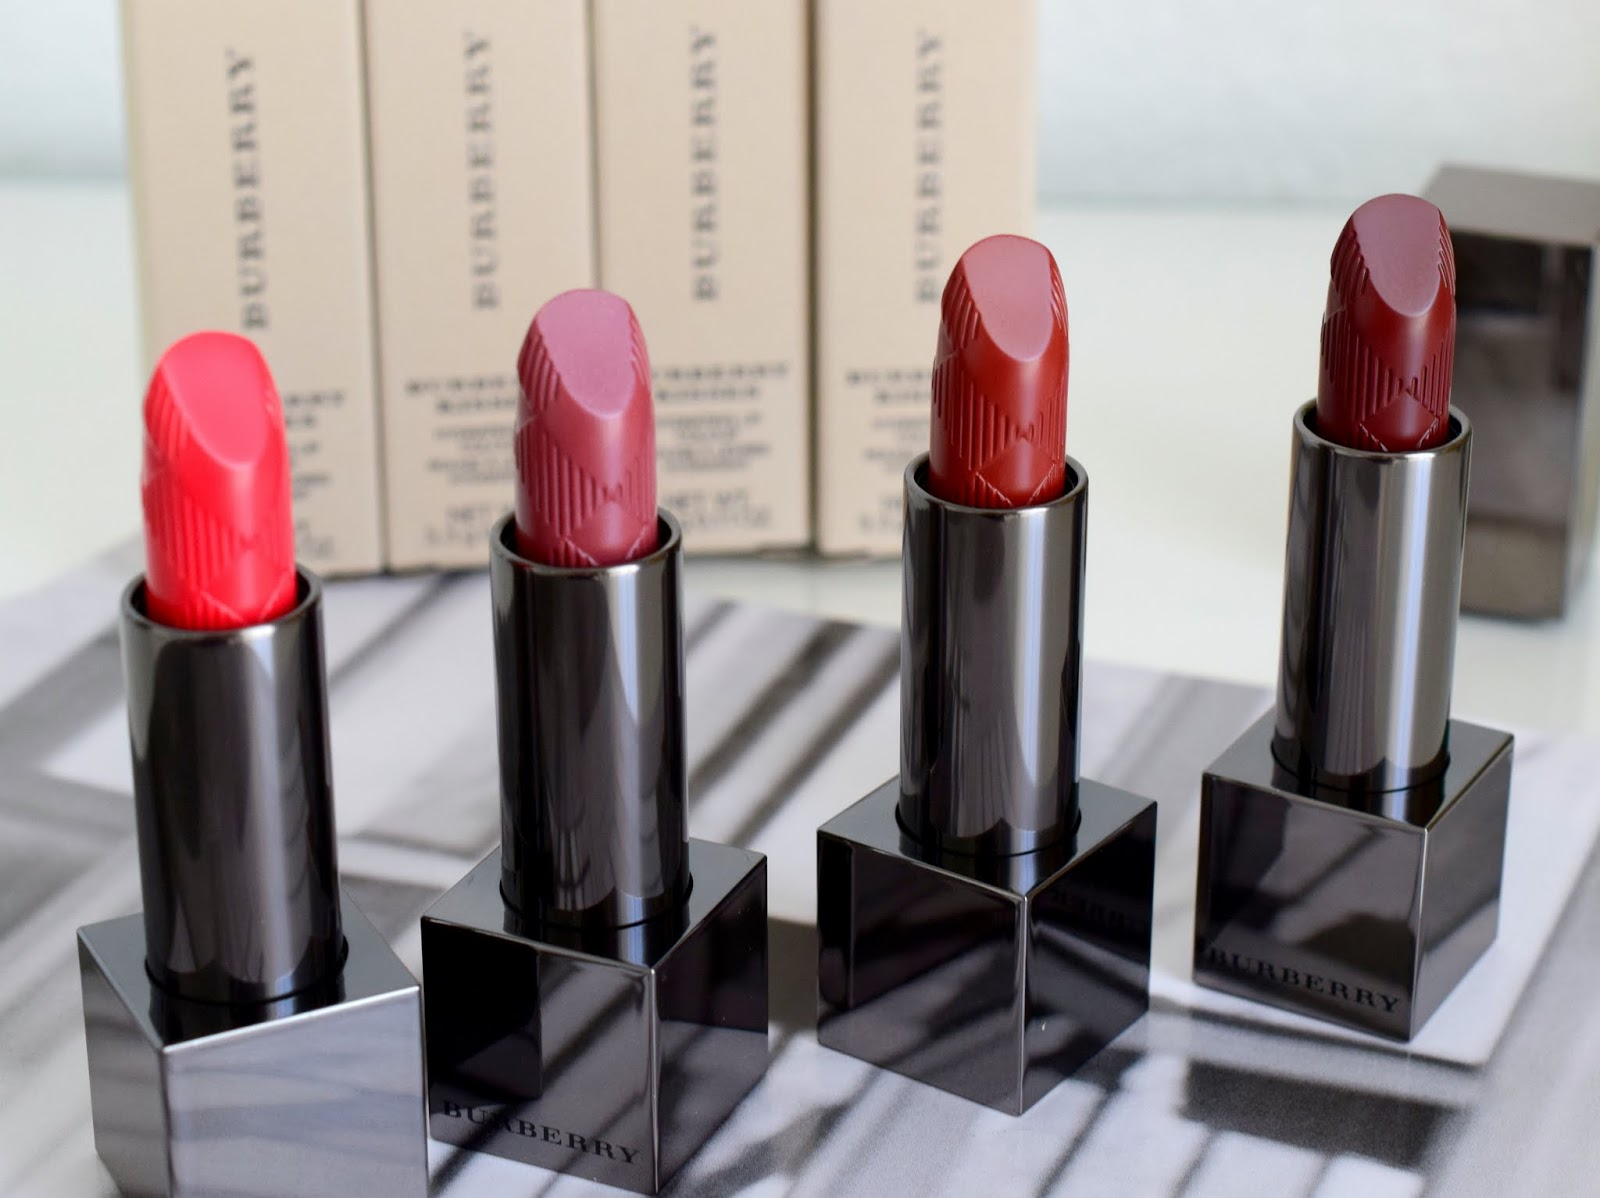 Burberry Kisses 53 Crimson Pink, 89 Rose Blush, 93 Russet, 97 Oxblood